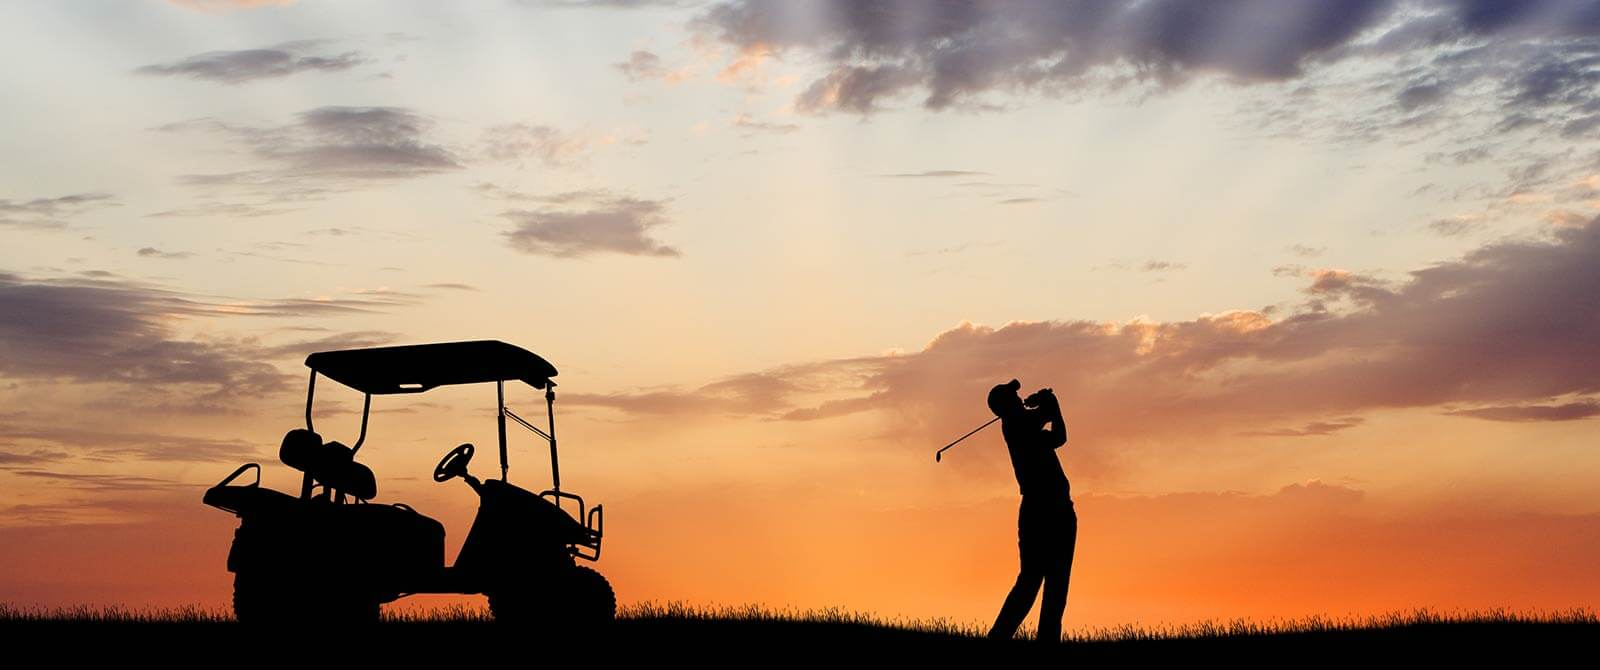 Silhouette of a man playing golf next to his lithium-ion powered golf buggy